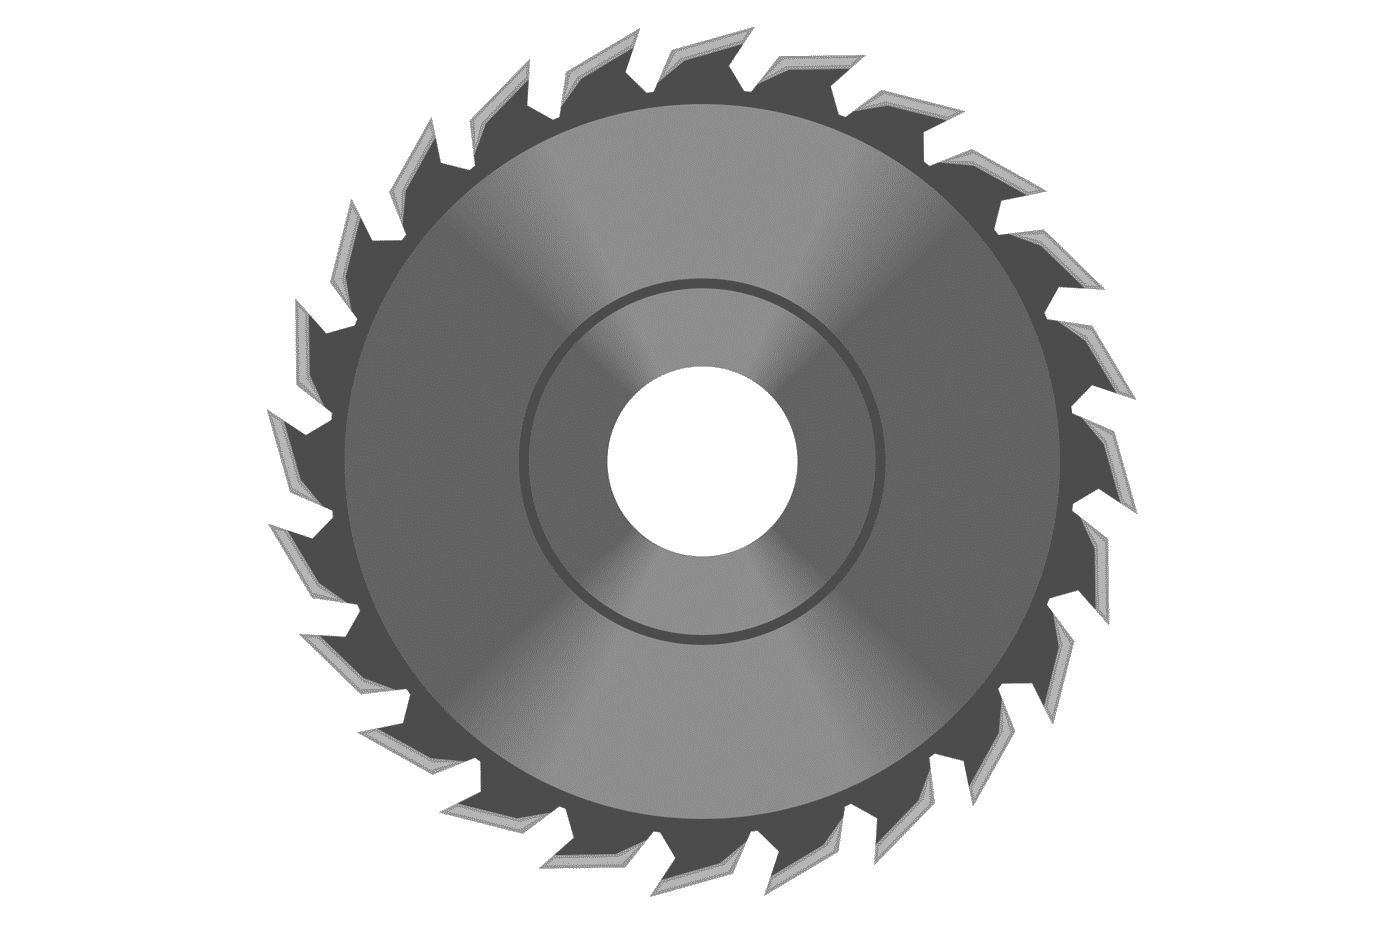 Graphic of a circular saw blade